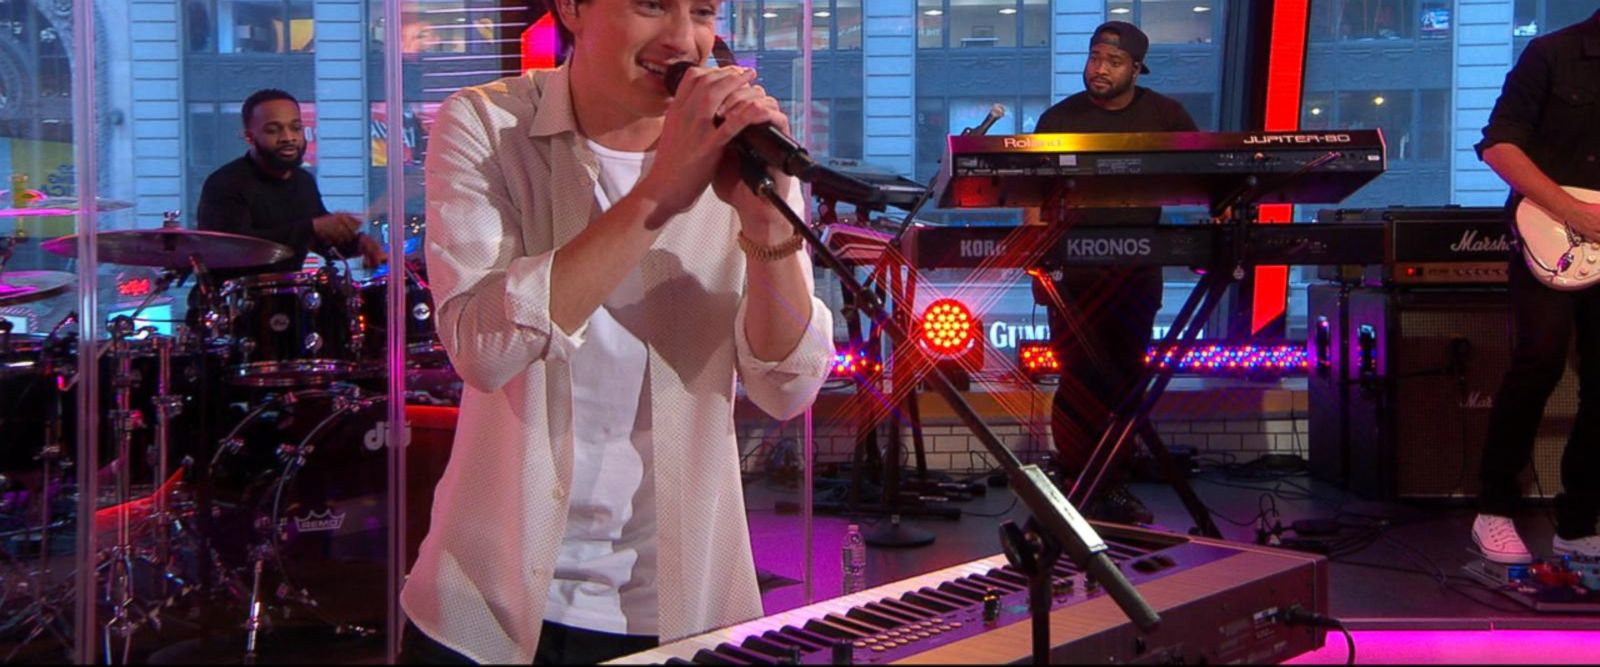 VIDEO: Charlie Puth performs 'Attention' on 'GMA'